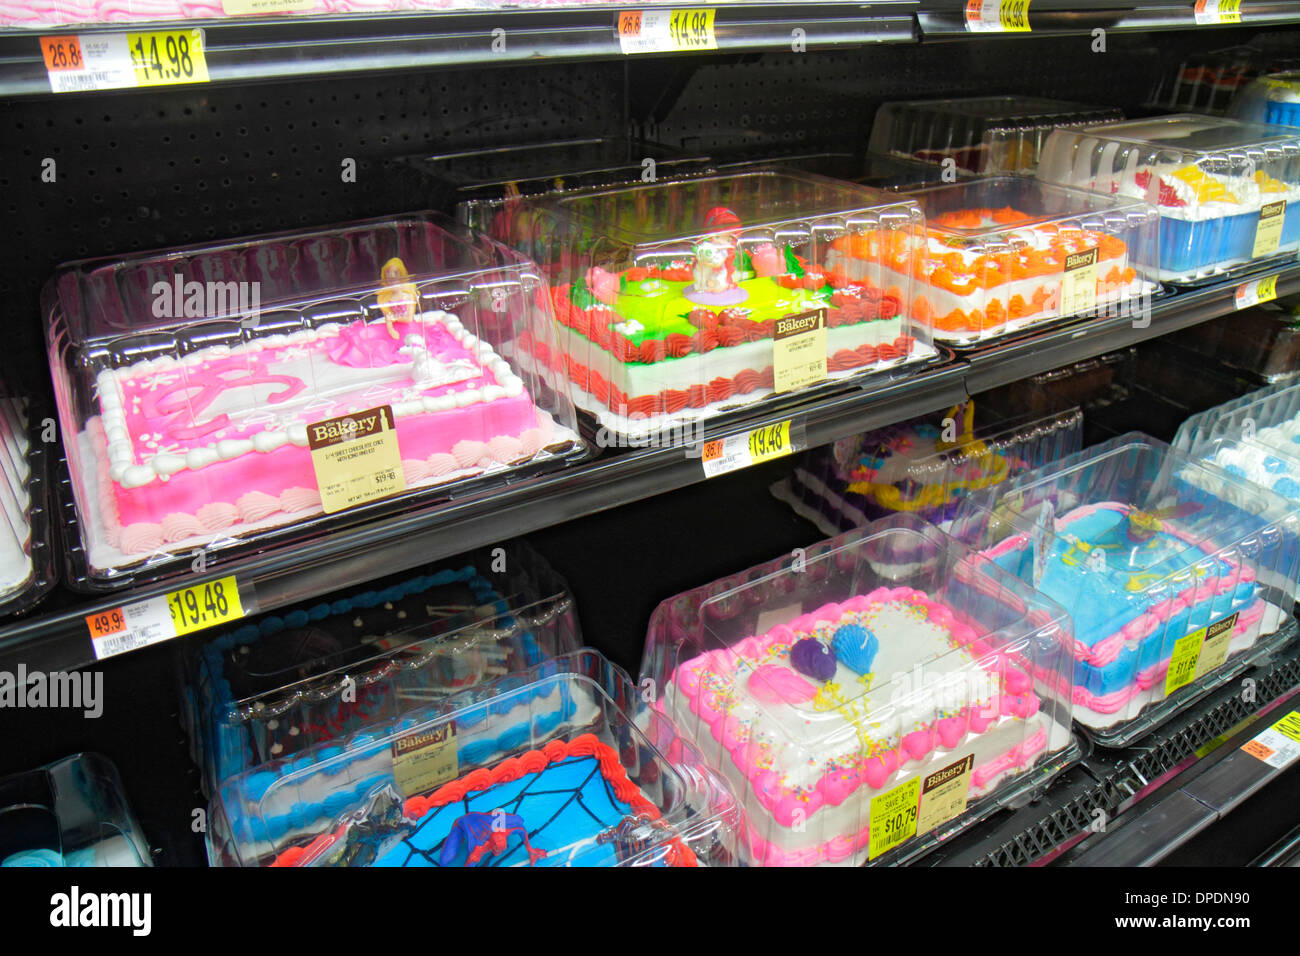 Miami Florida Wal-Mart Walmart shopping decorated cakes